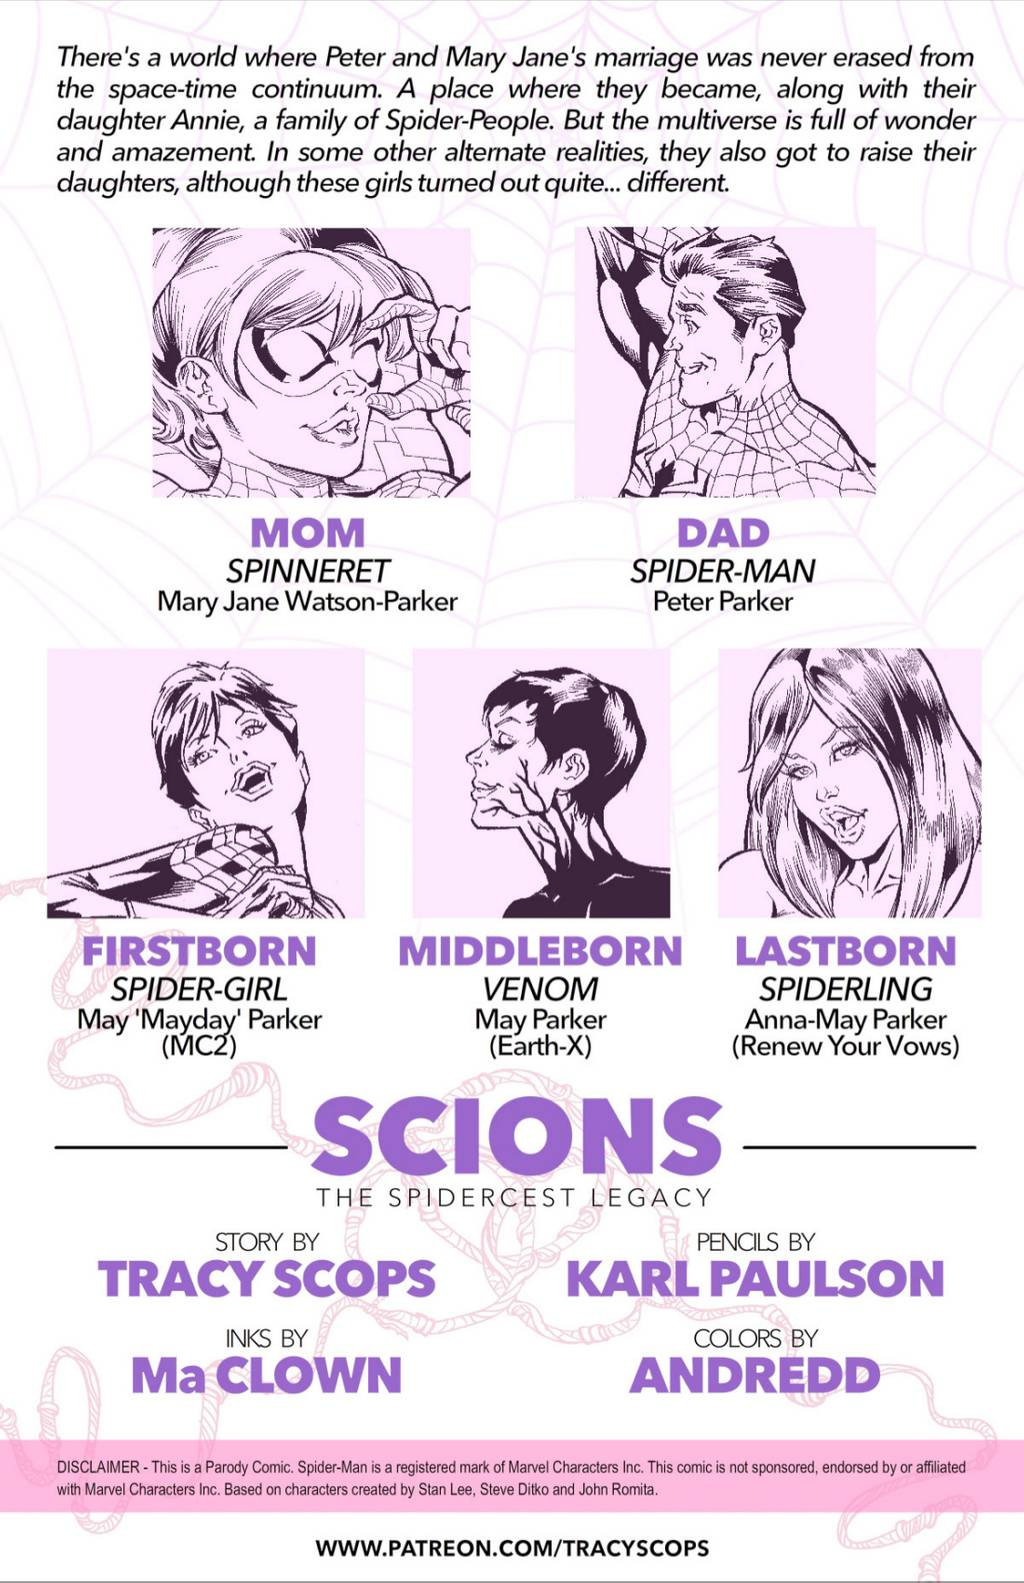 Scions- The Spidercest Legacy-Tracyscops